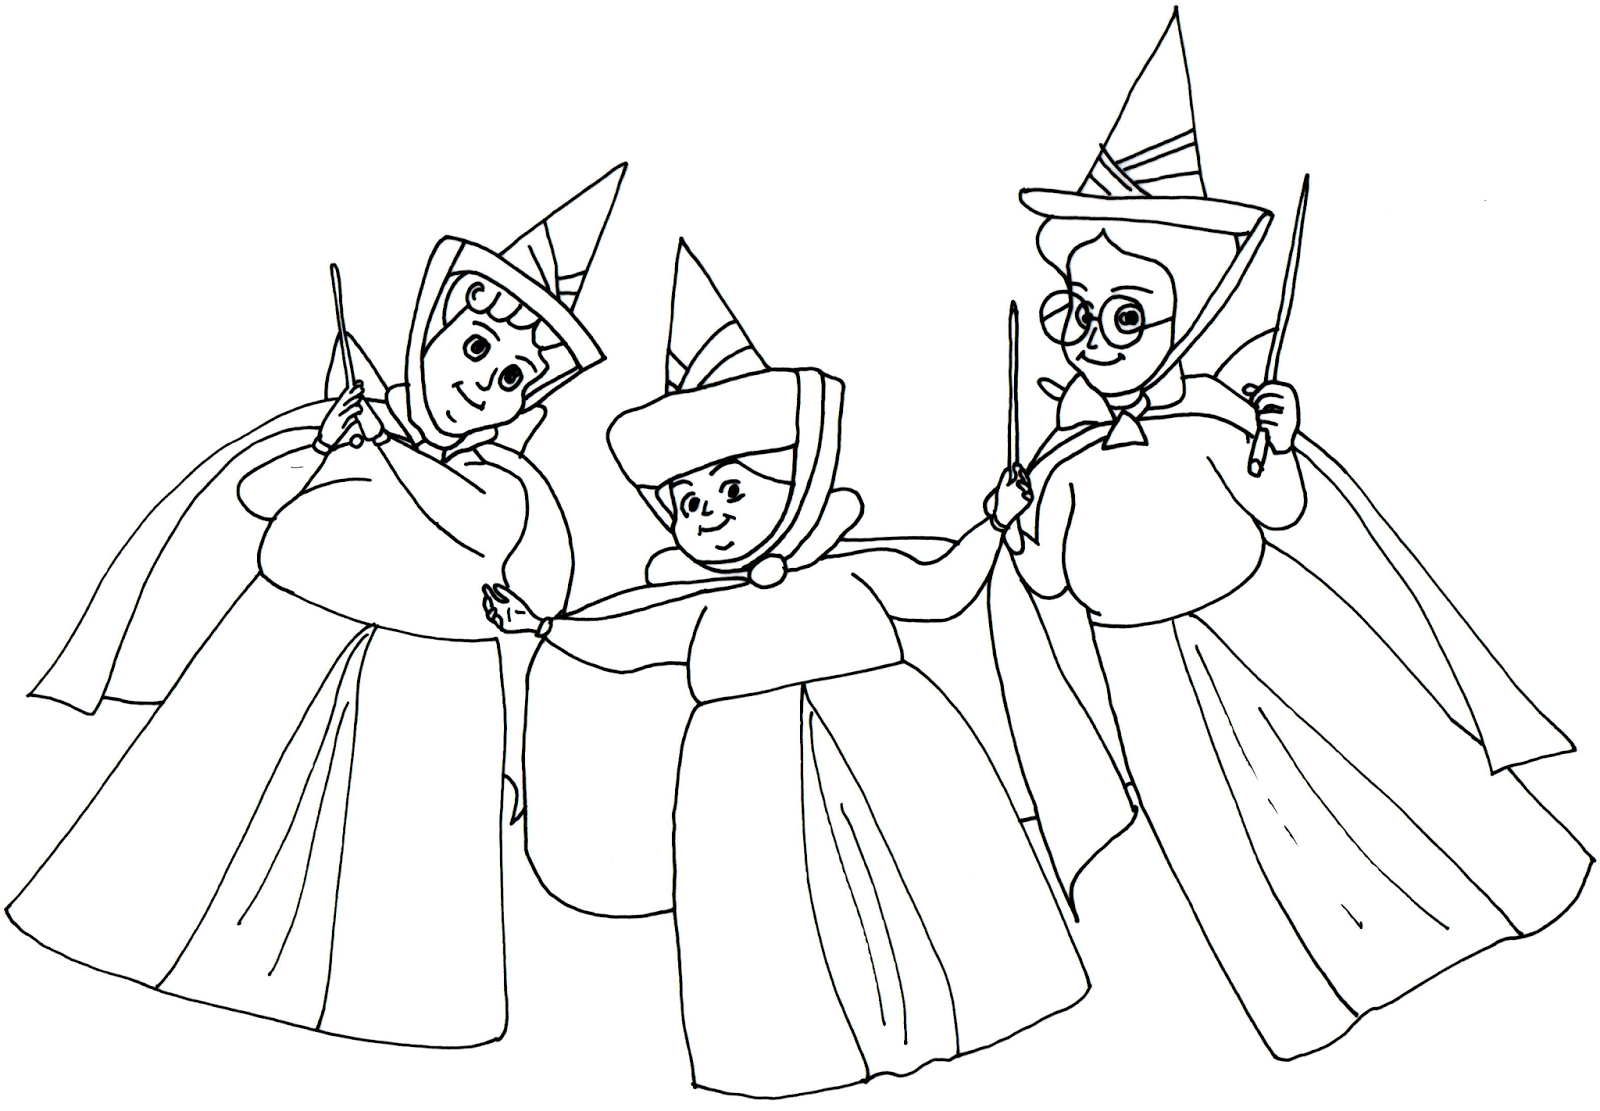 Sofia the first coloring pages headmistresses at royal for Free printable sofia the first coloring pages